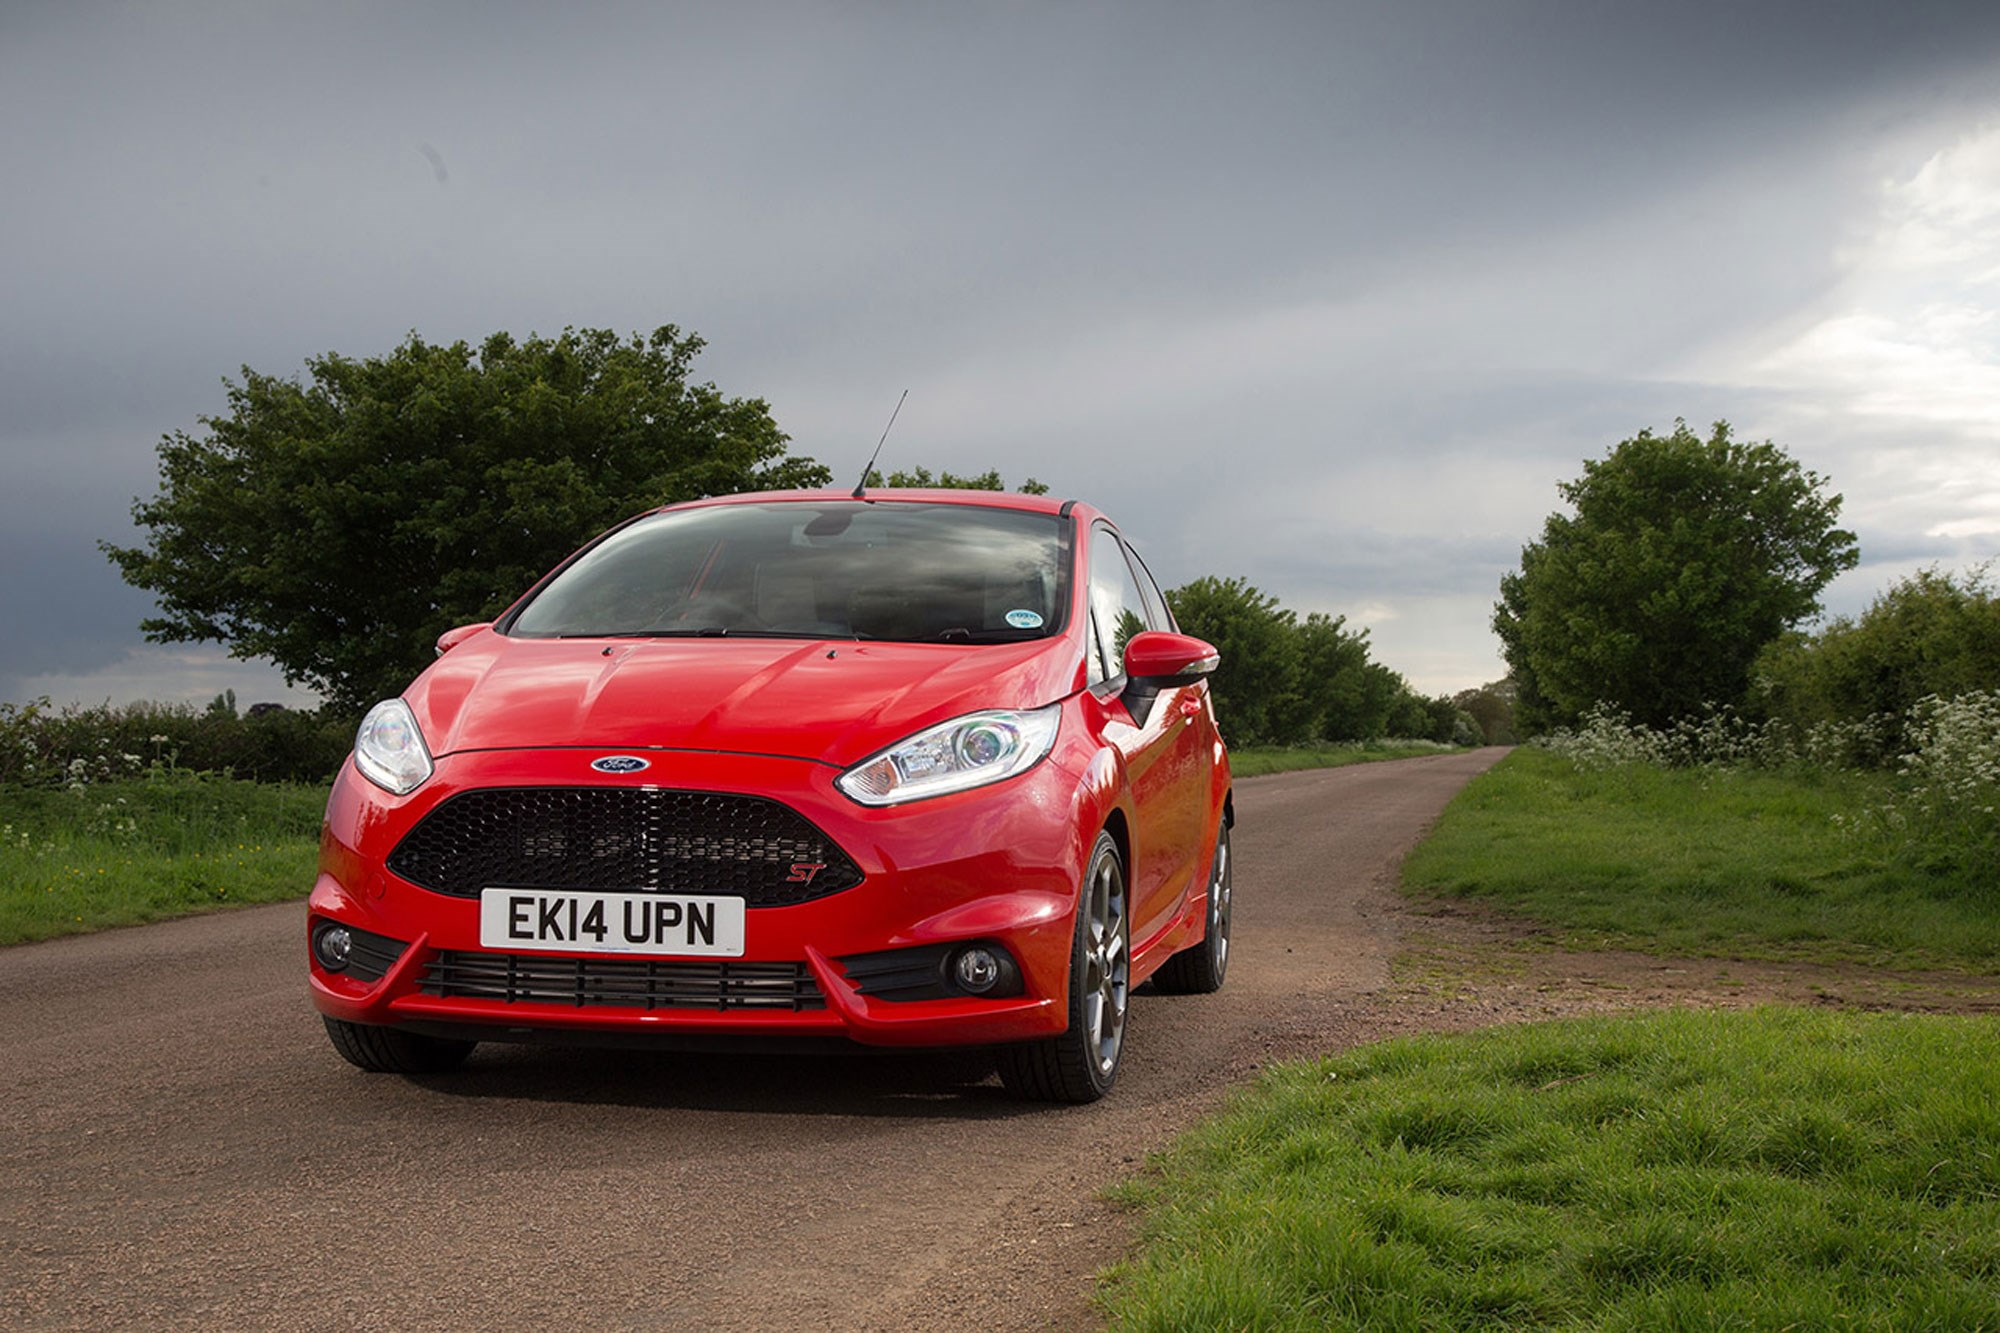 de4171015f Ford Fiesta ST (2015) long-term test review